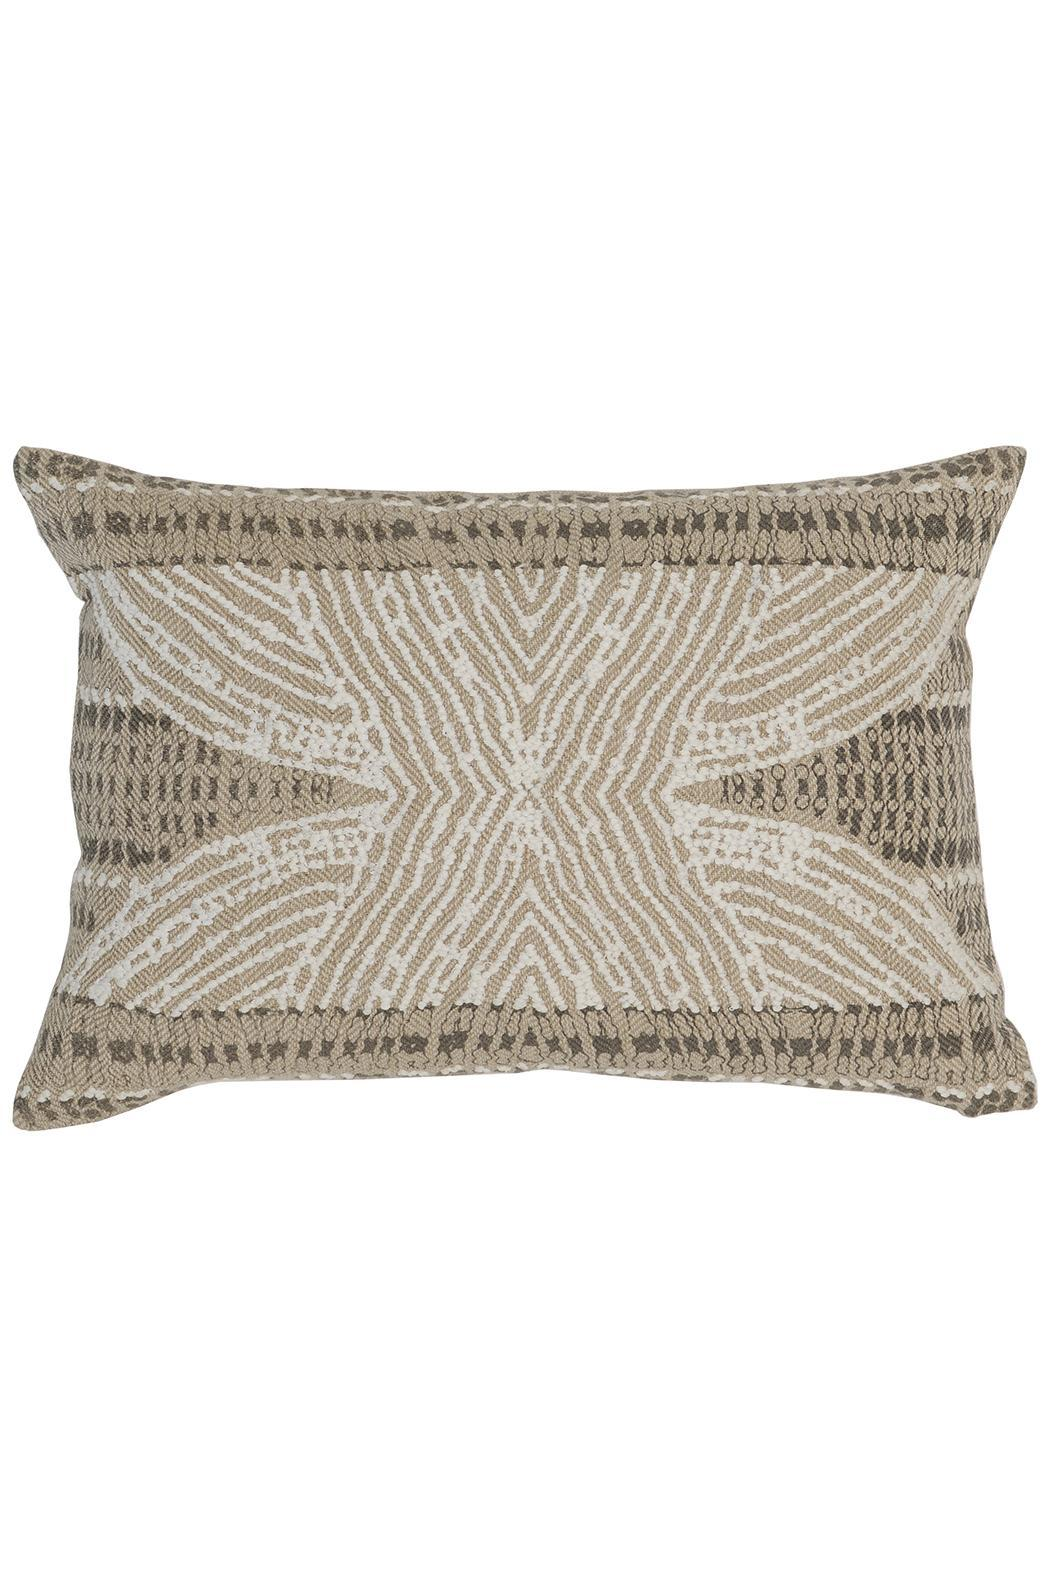 Villa home collection penida pillow from atlanta by for Villa home collection pillows